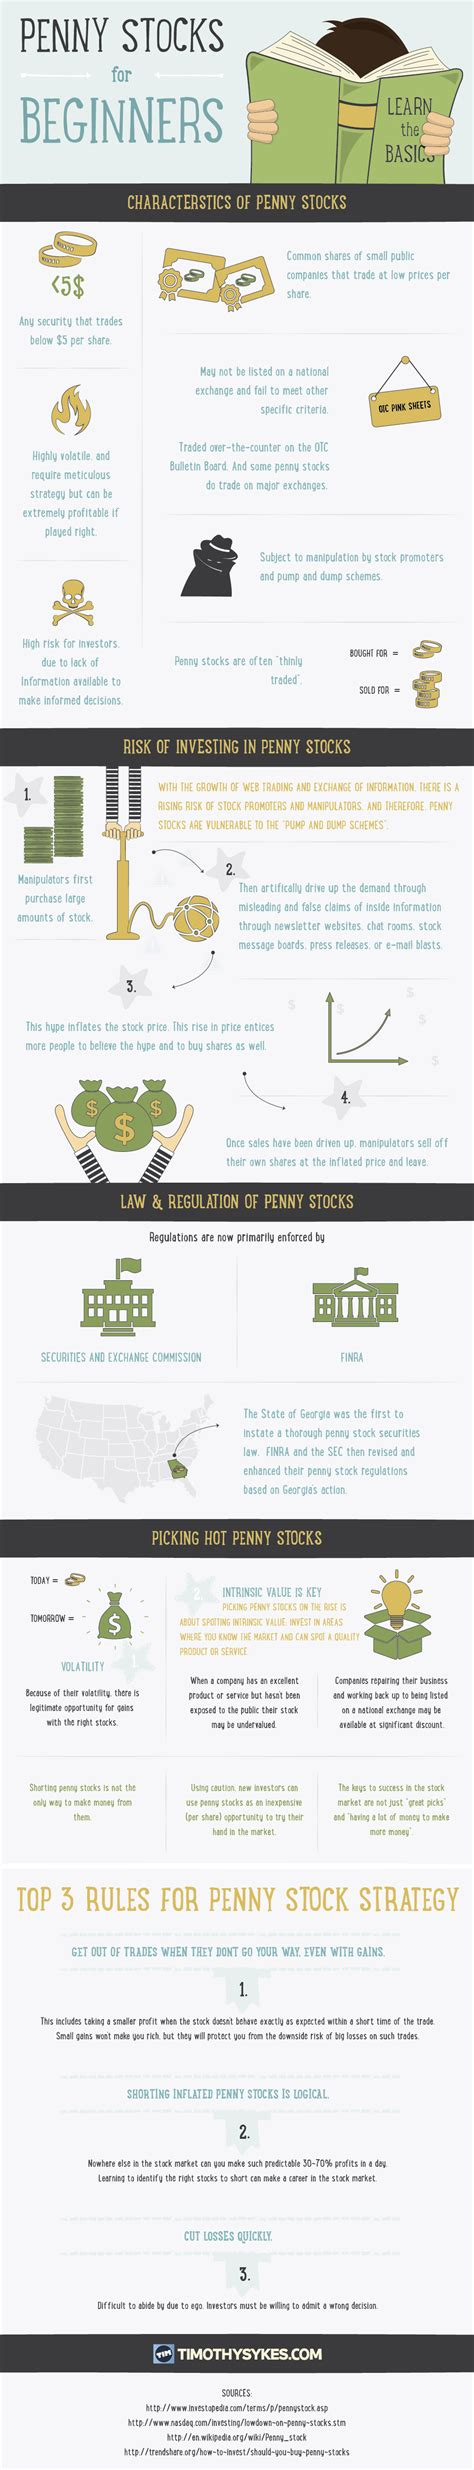 penny stocks trading buying  beginners infographics